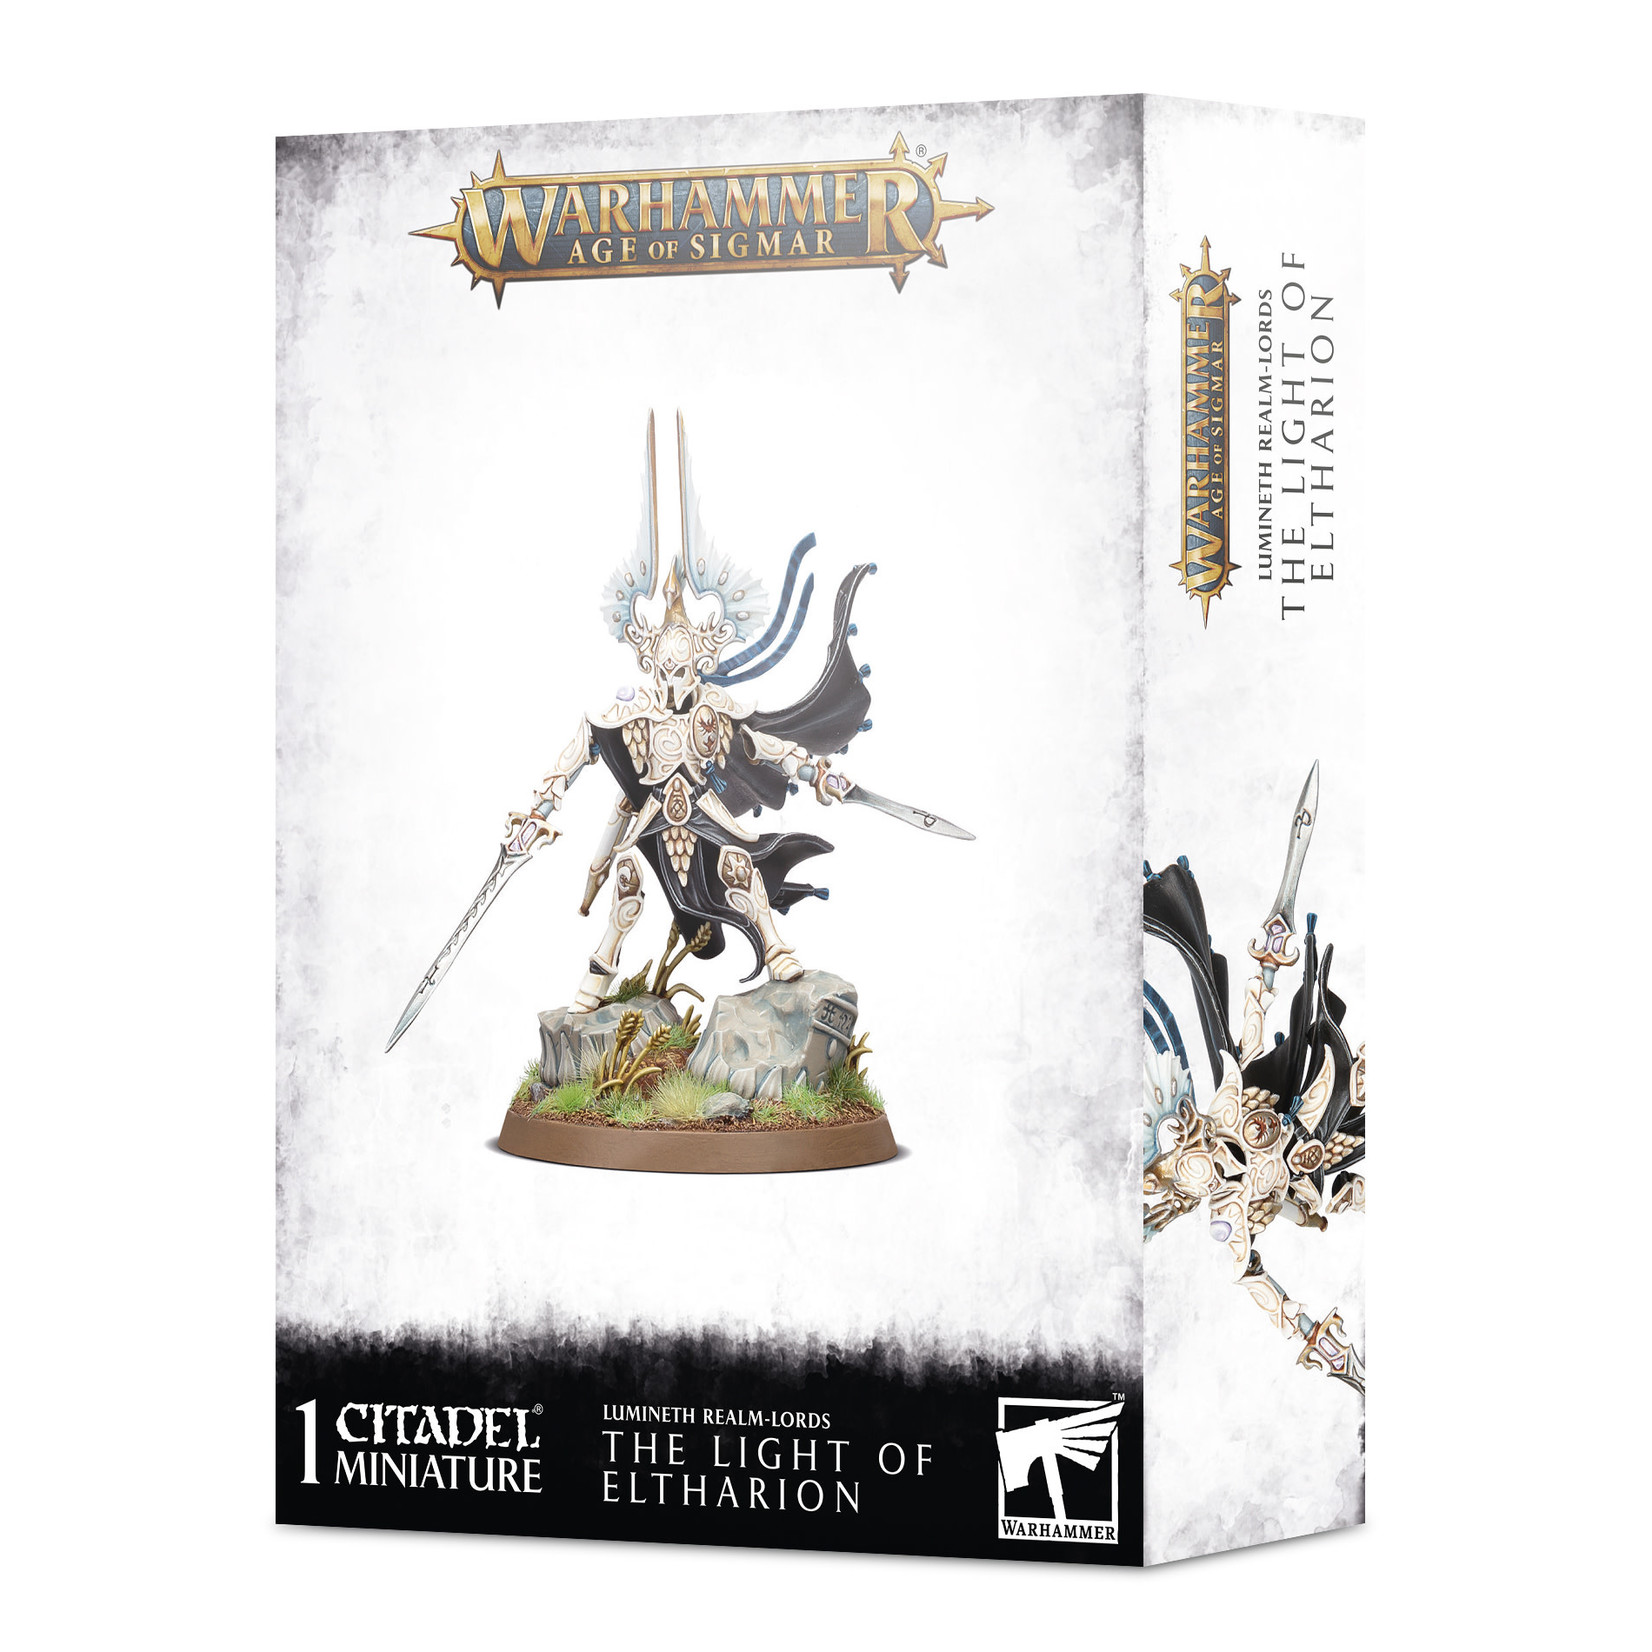 Games Workshop Warhammer Age of Sigma: Lumineth Realm-Lords The Light of Eltharion